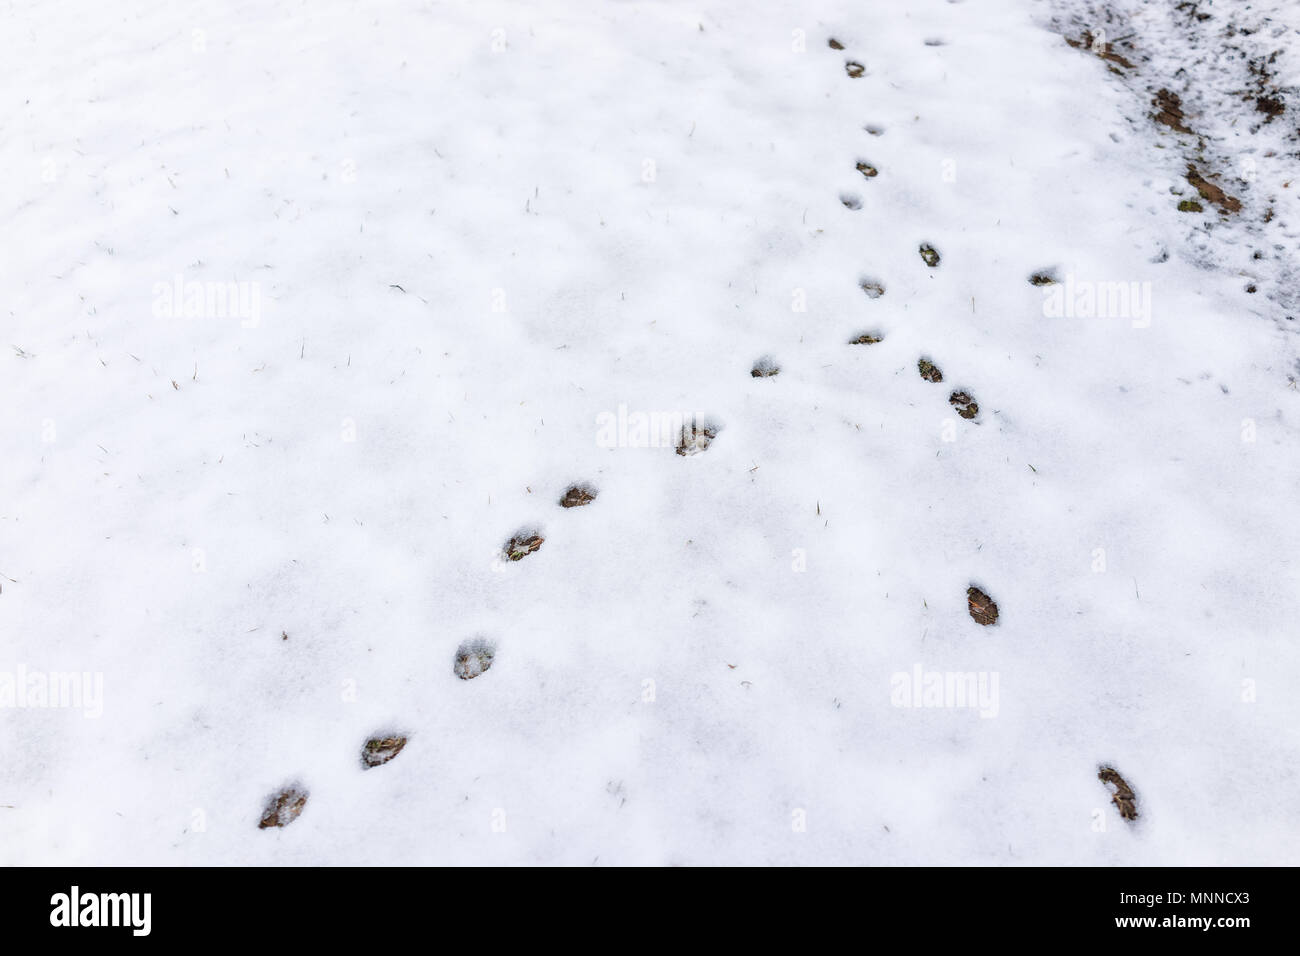 Closeup of fox tracks in backyard of house on snow covered ground after blizzard white storm in Virginia suburb - Stock Image